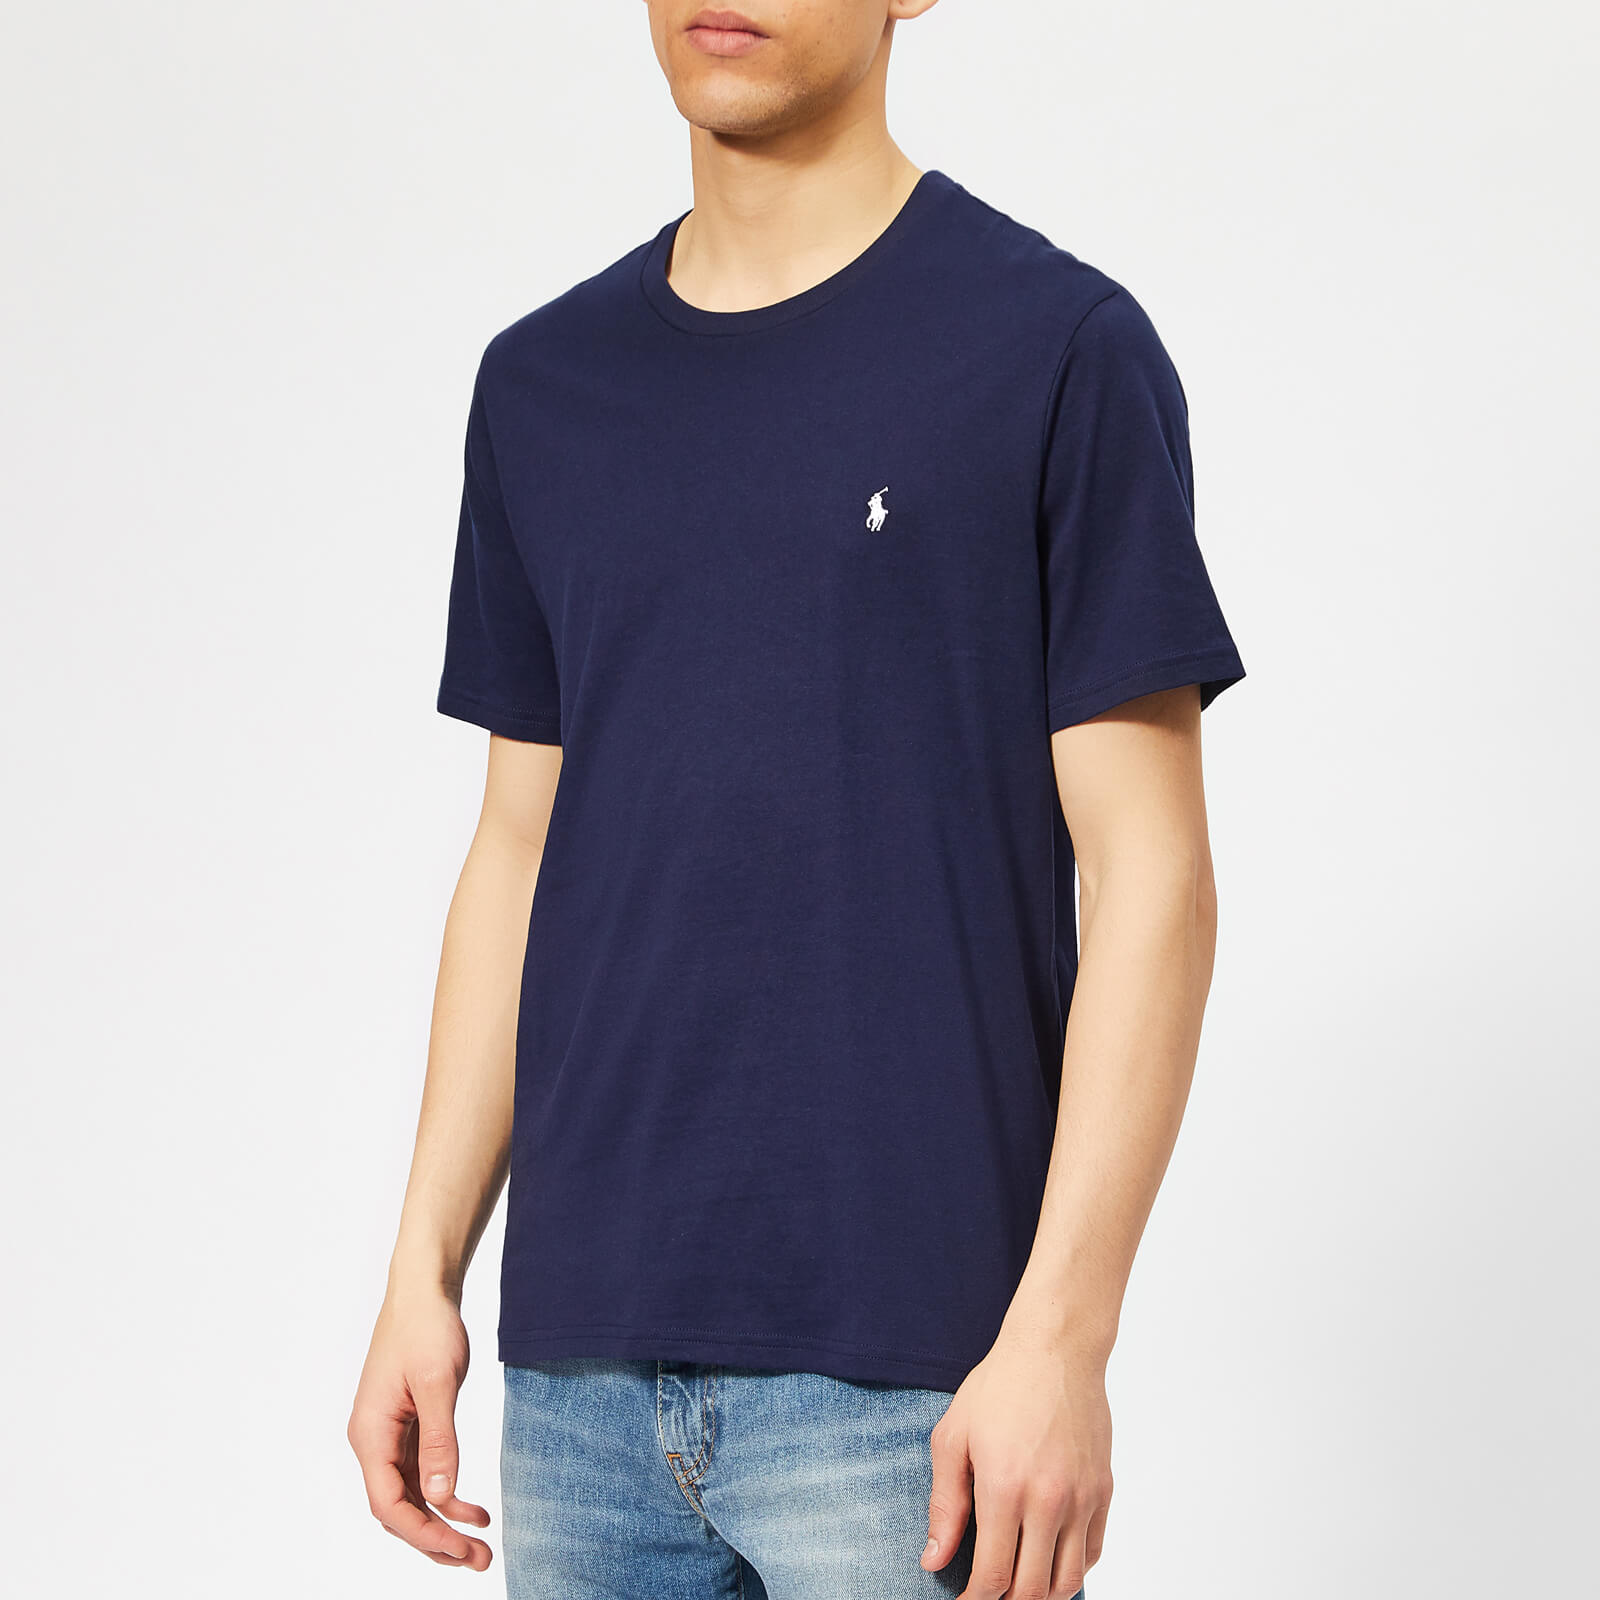 773c0a85 Polo Ralph Lauren Men's Liquid Cotton Jersey T-Shirt - Cruise Navy - Free  UK Delivery over £50